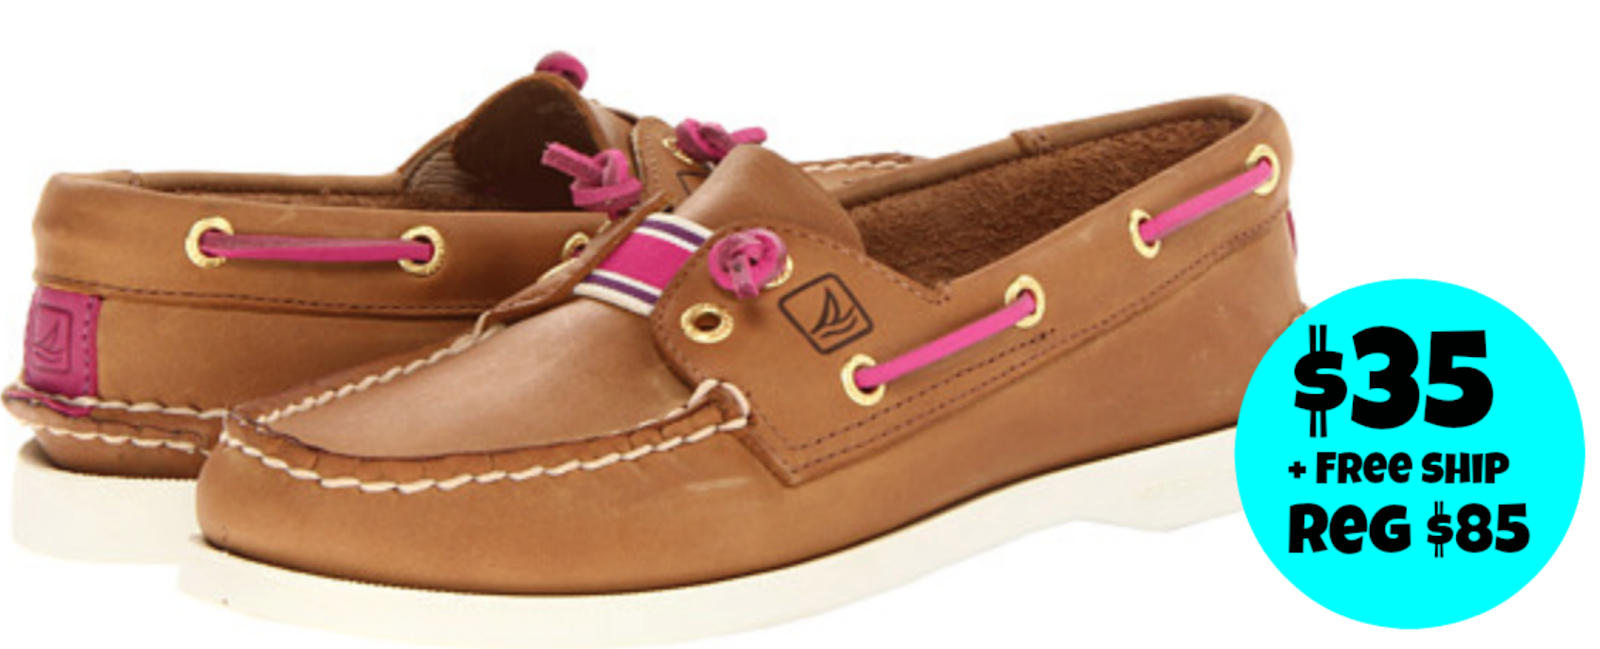 http://www.thebinderladies.com/2015/02/6pm-womens-sperry-lexington-boat-shoes.html#.VM-I84fduyM